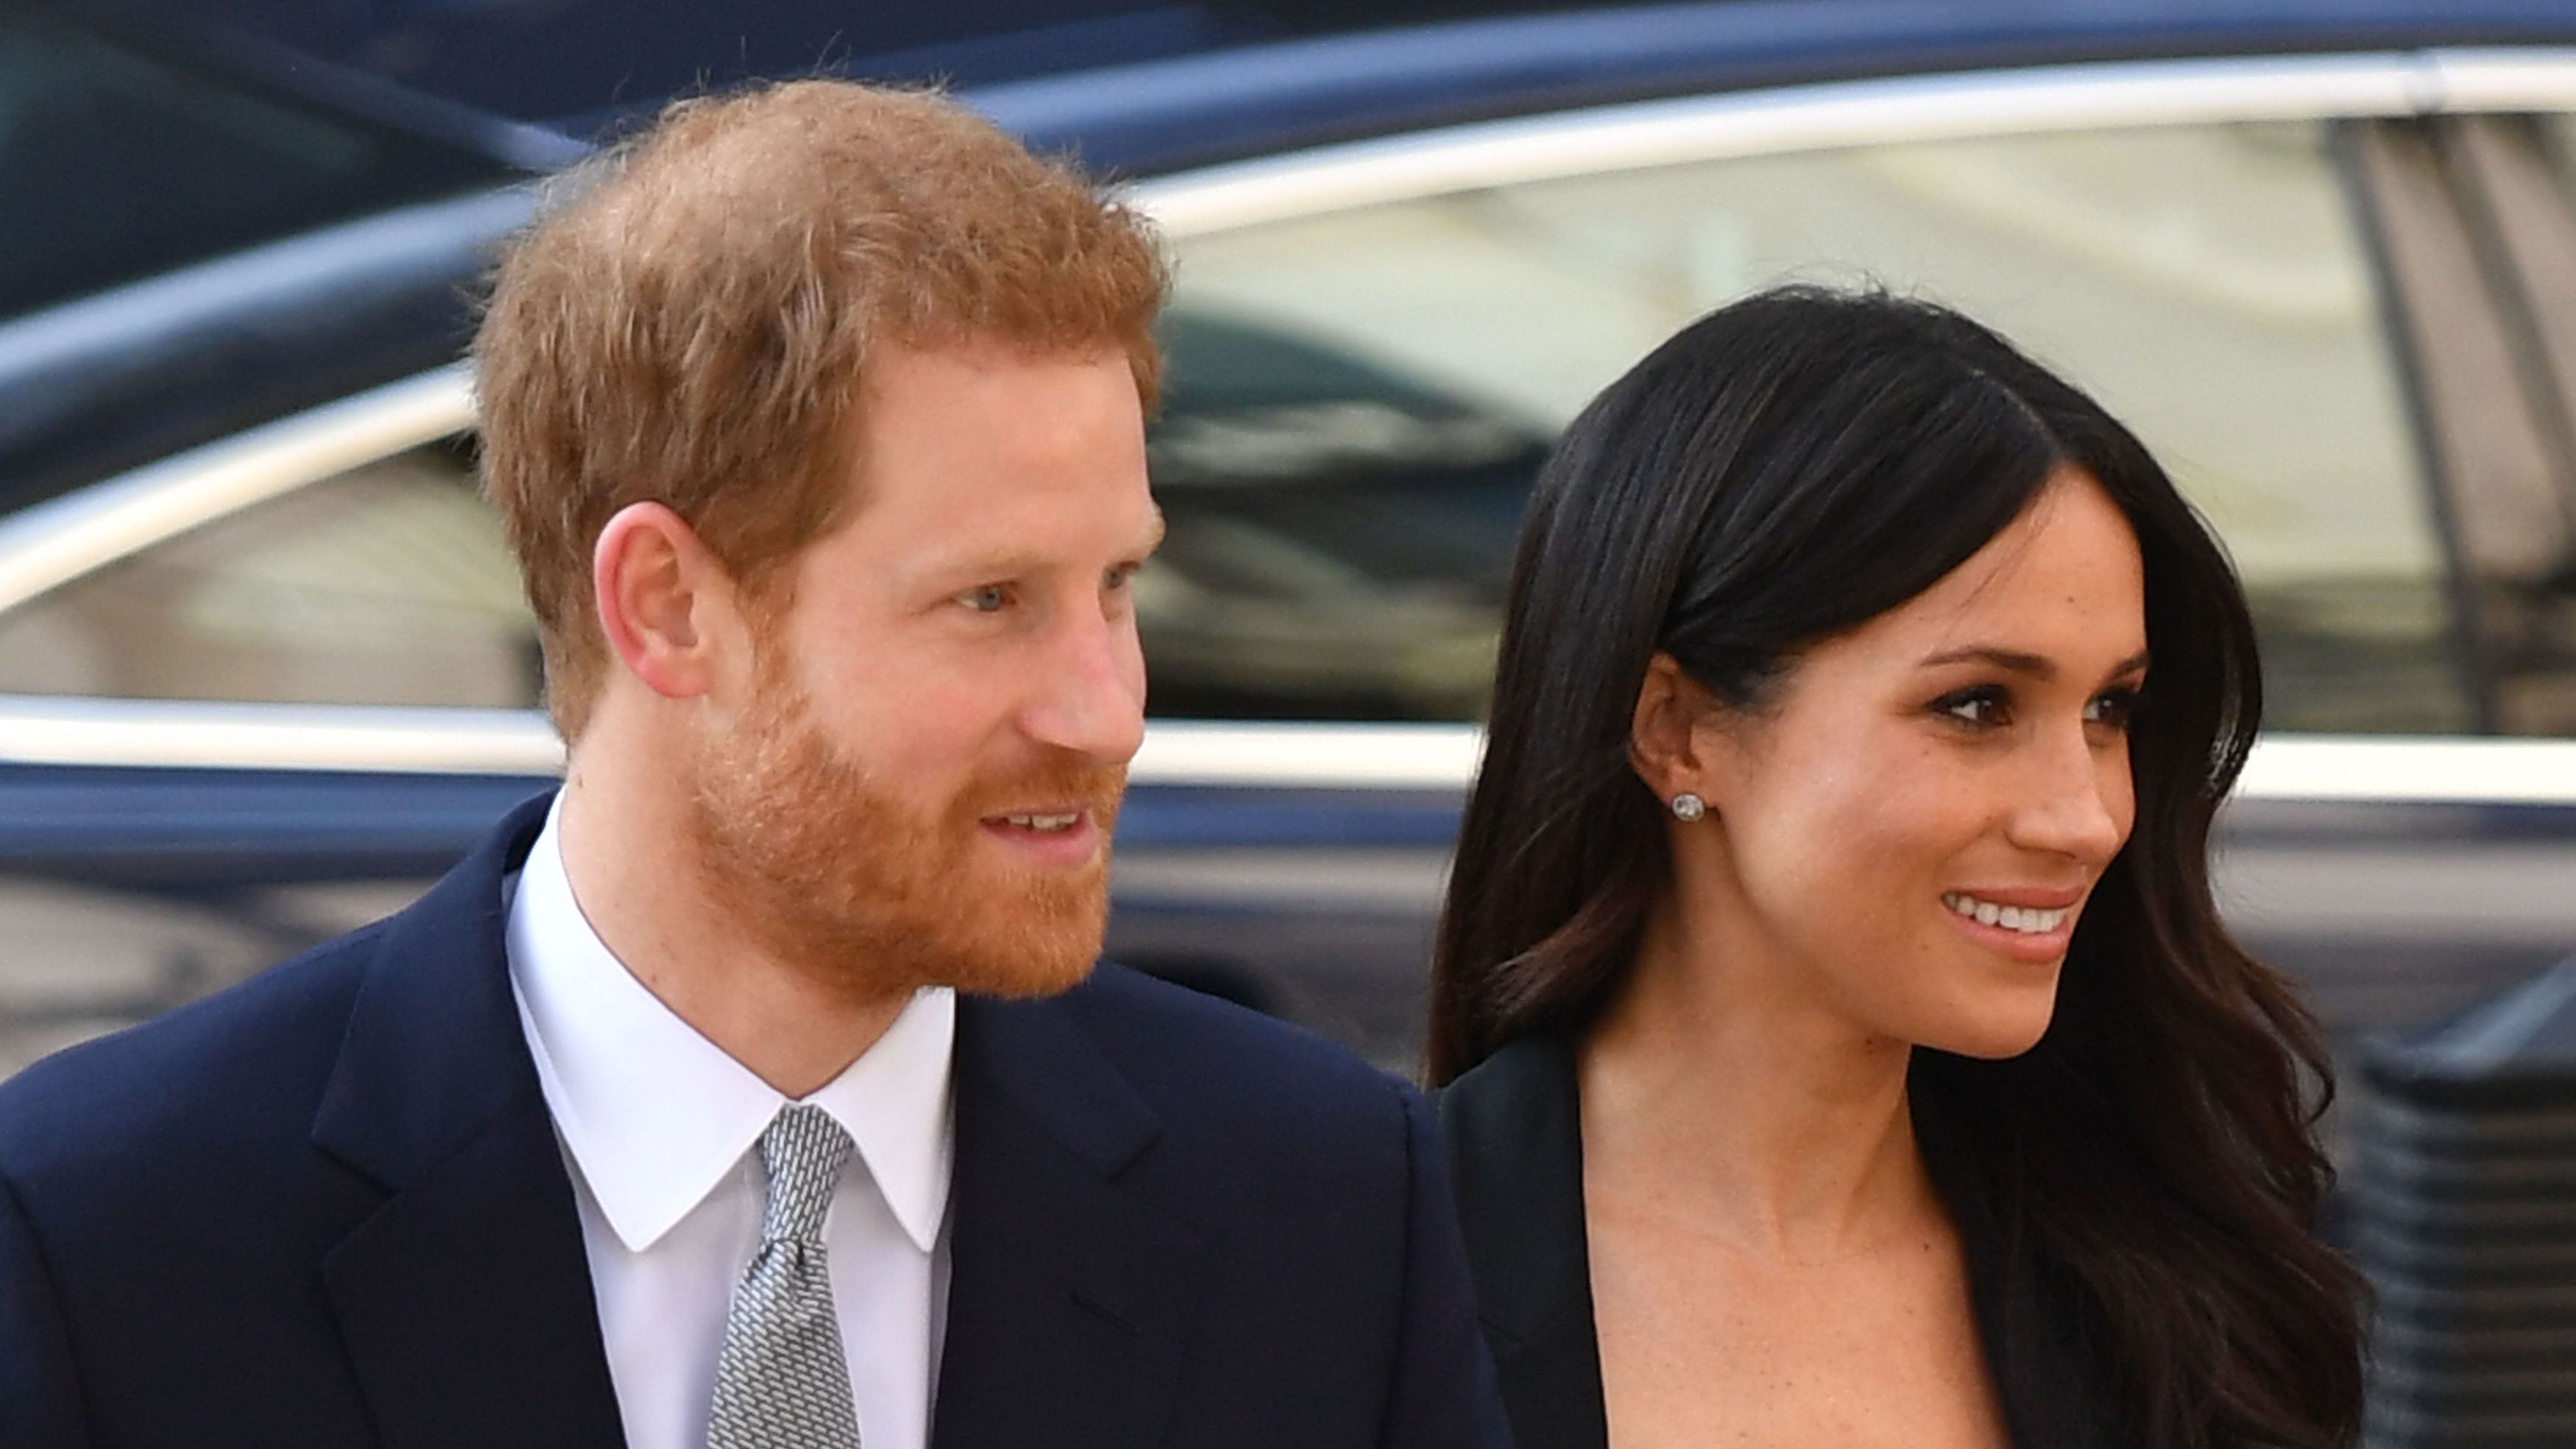 Forecast predicts rain for the Royal Wedding